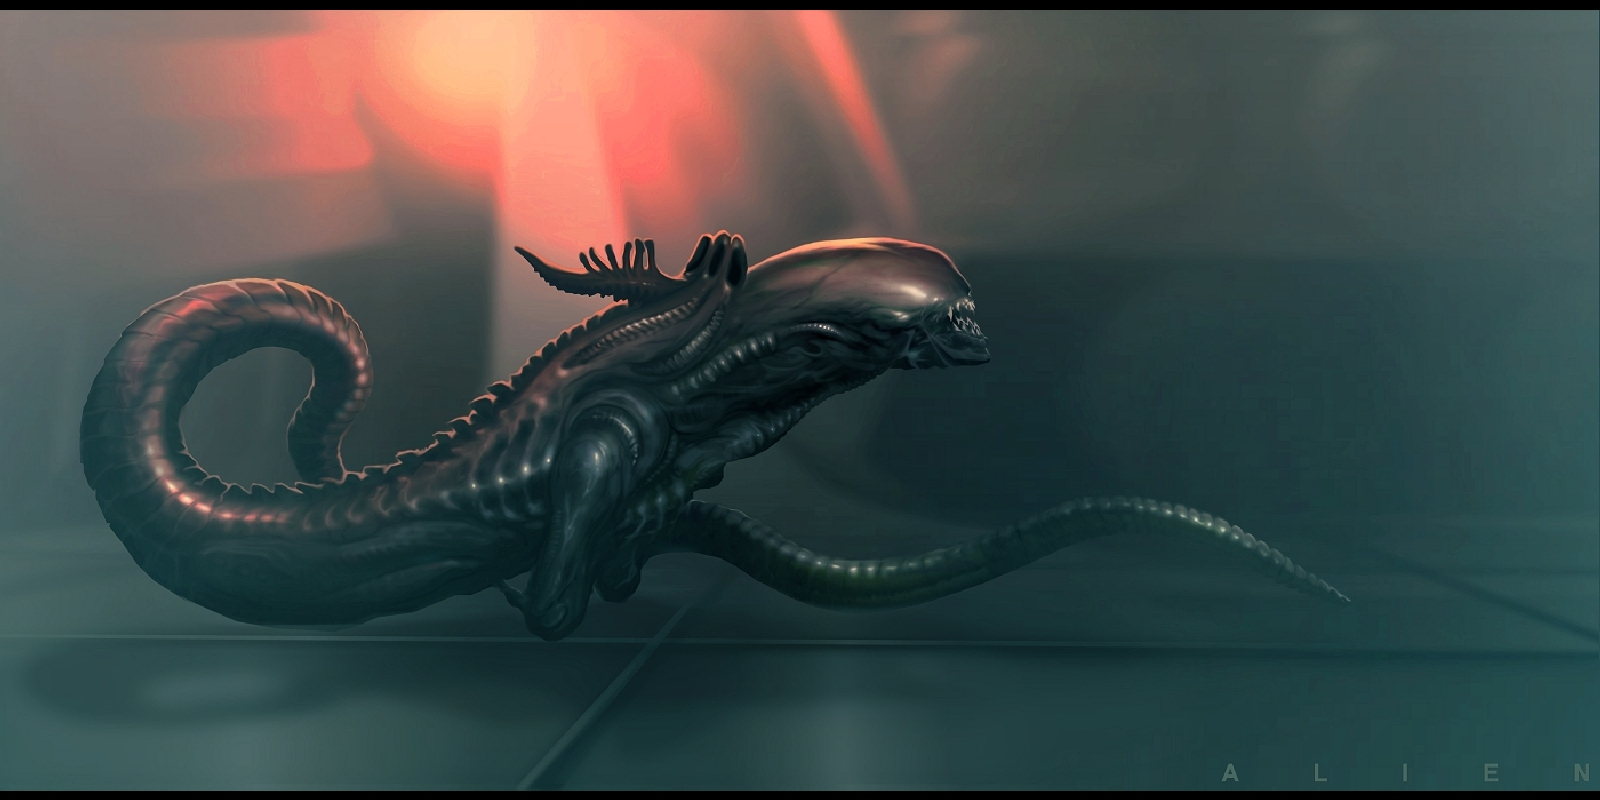 Profile Photo Id 129635 Avatar Abyss: Alien Wallpaper And Background Image